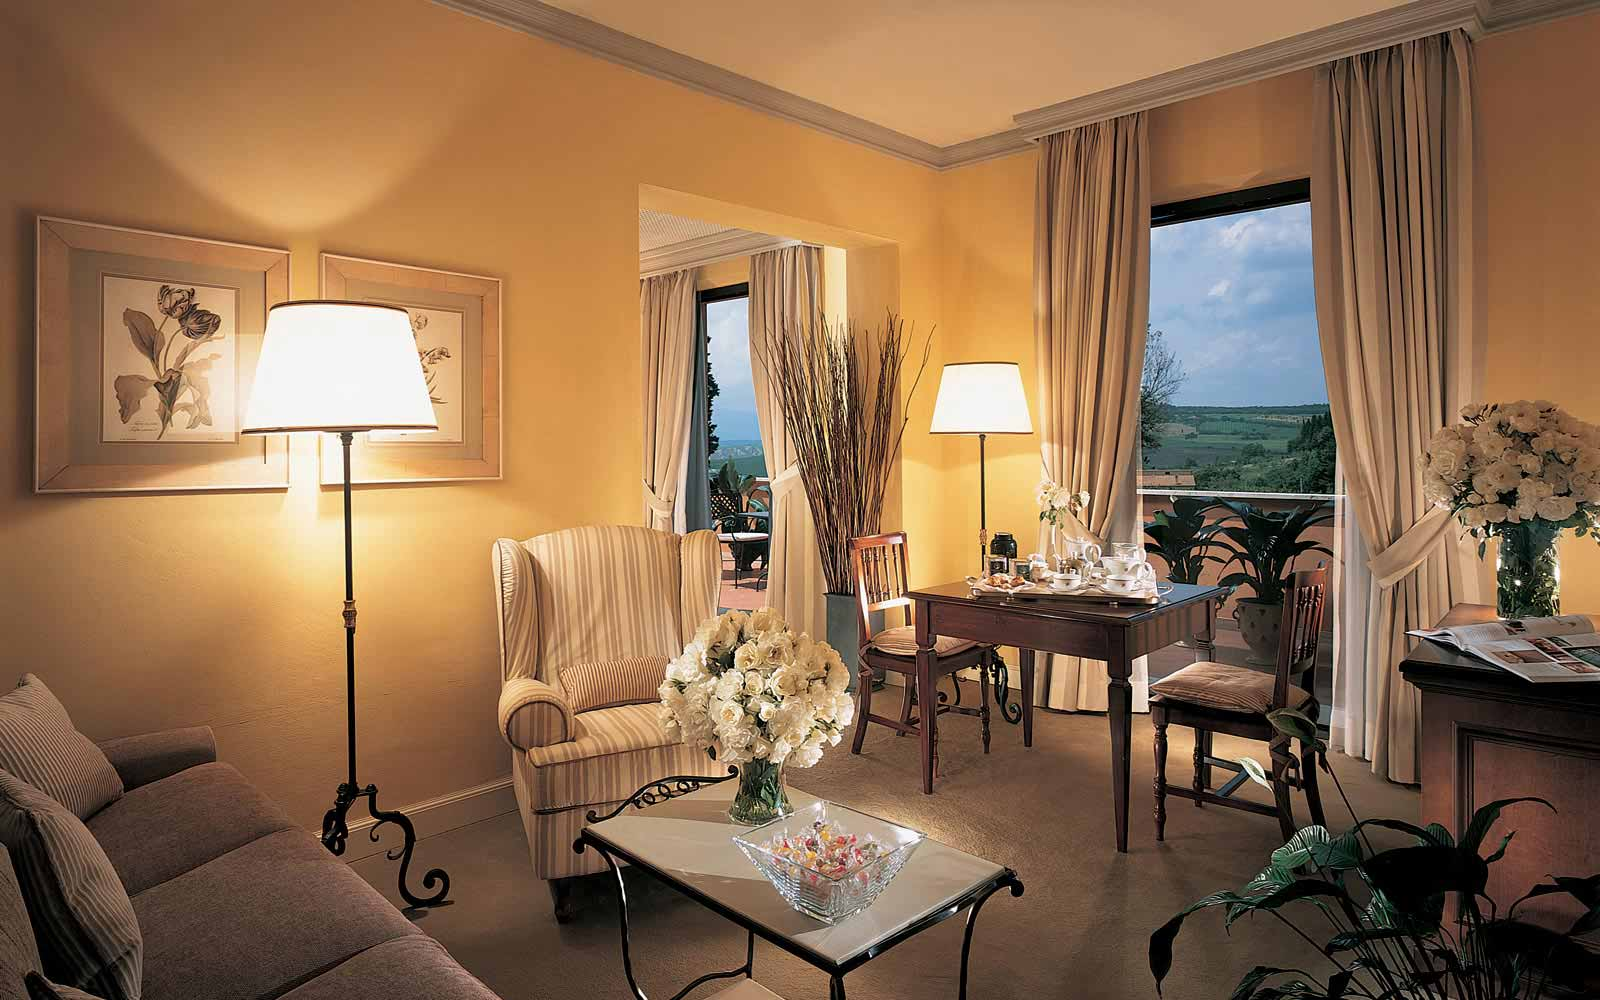 Grand suite living room and terrace at the Fonteverde